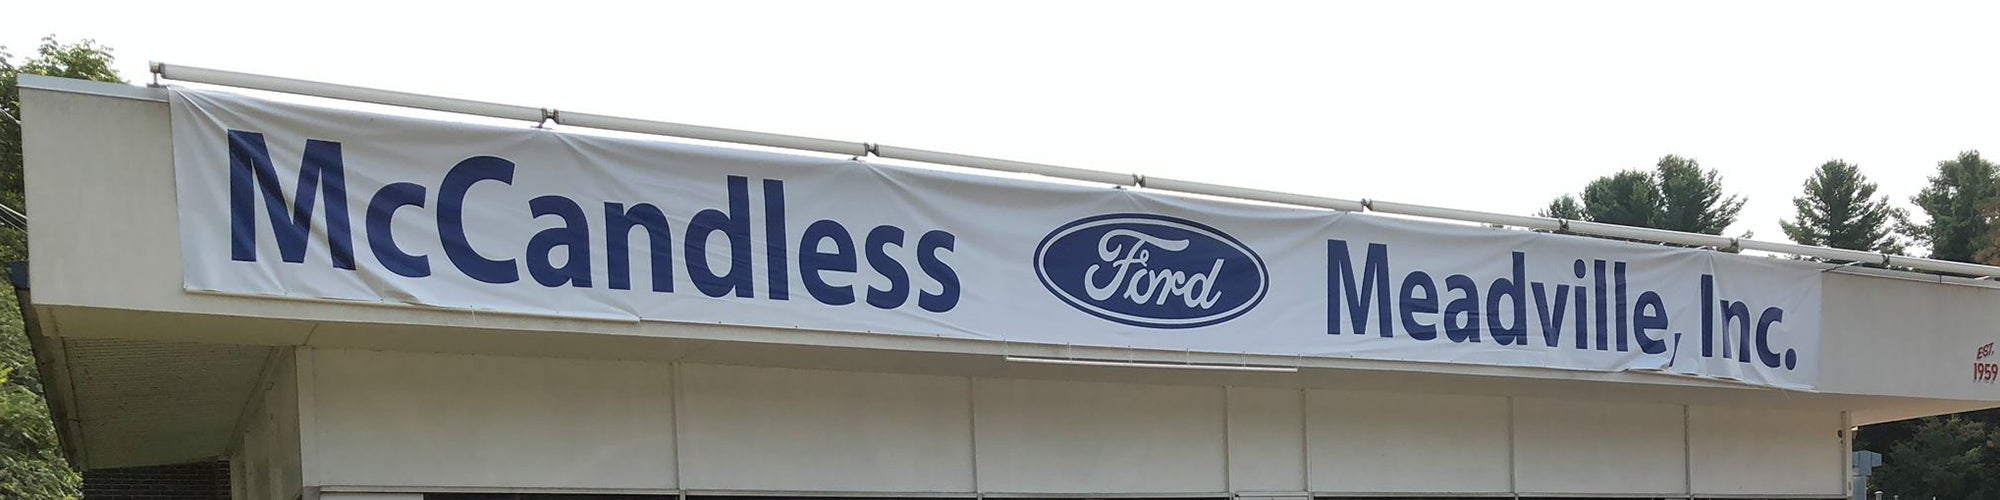 Welcome Meadville Customers Mccandless Ford Meadville